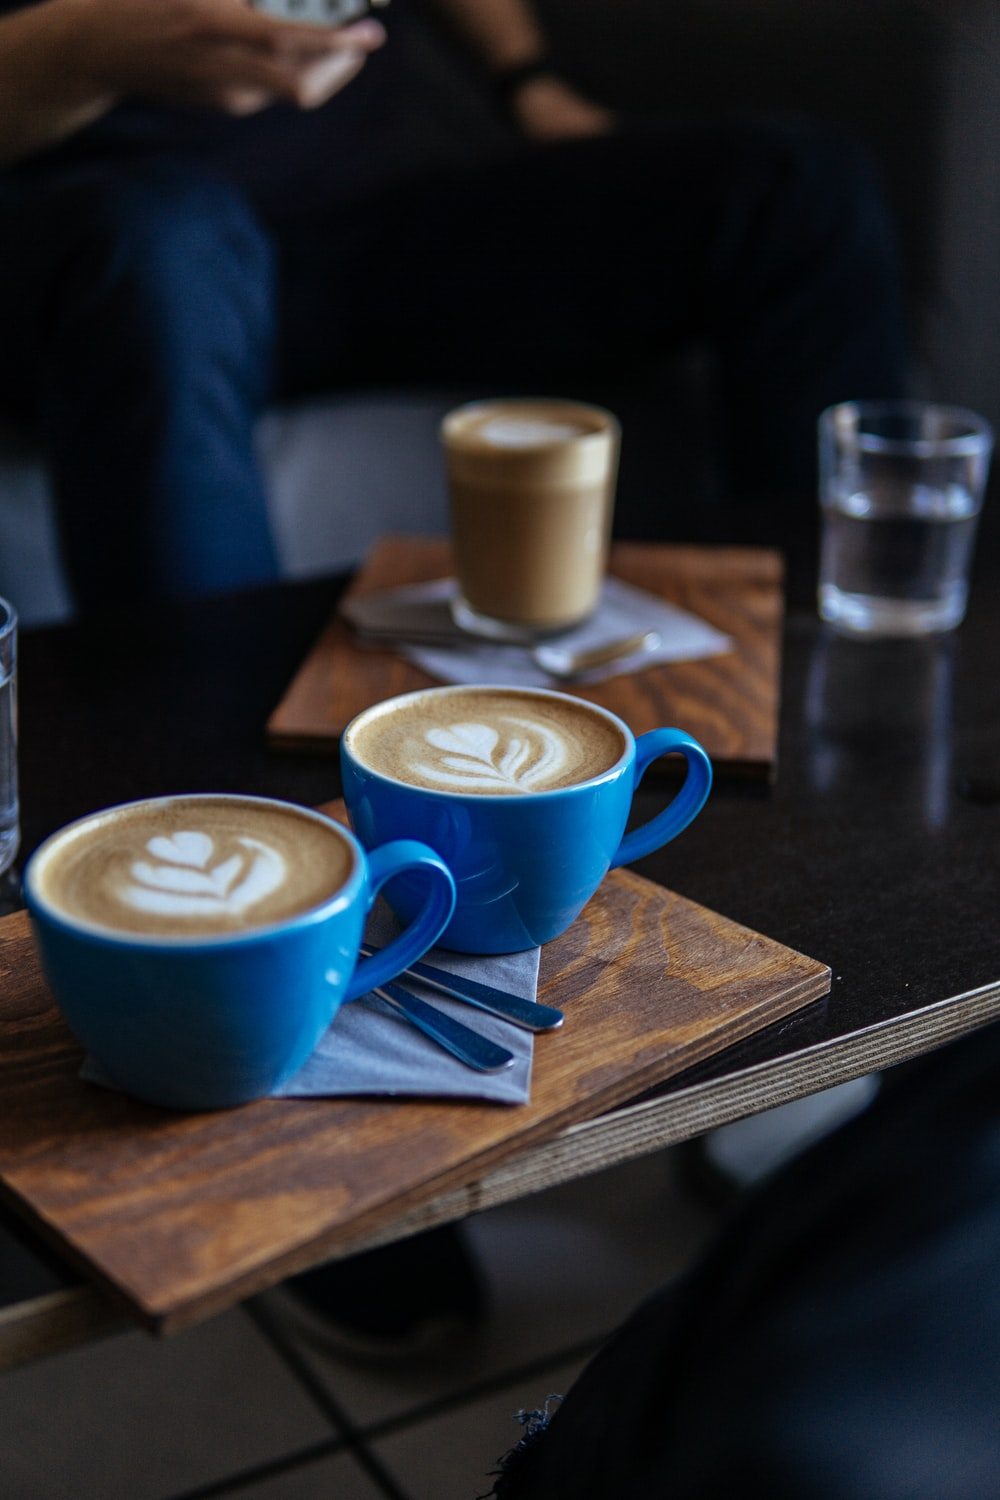 two blue ceramic mugs on brown table